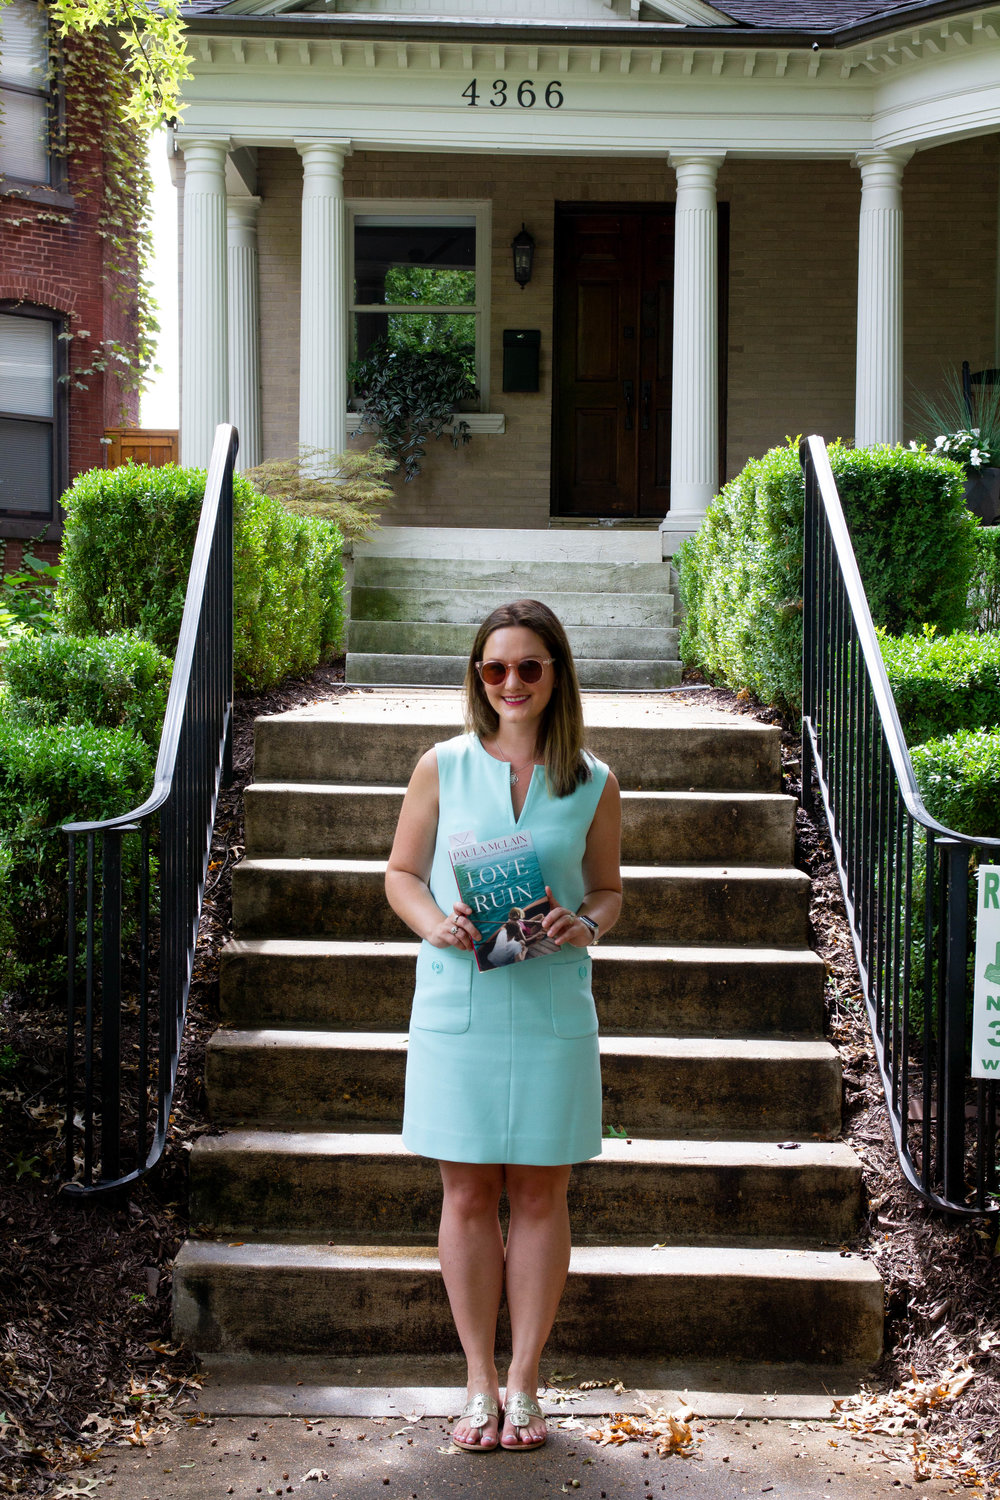 Reading Love and Ruin by Paula McLain outside Martha Gellhorn's childhood home in St. Louis